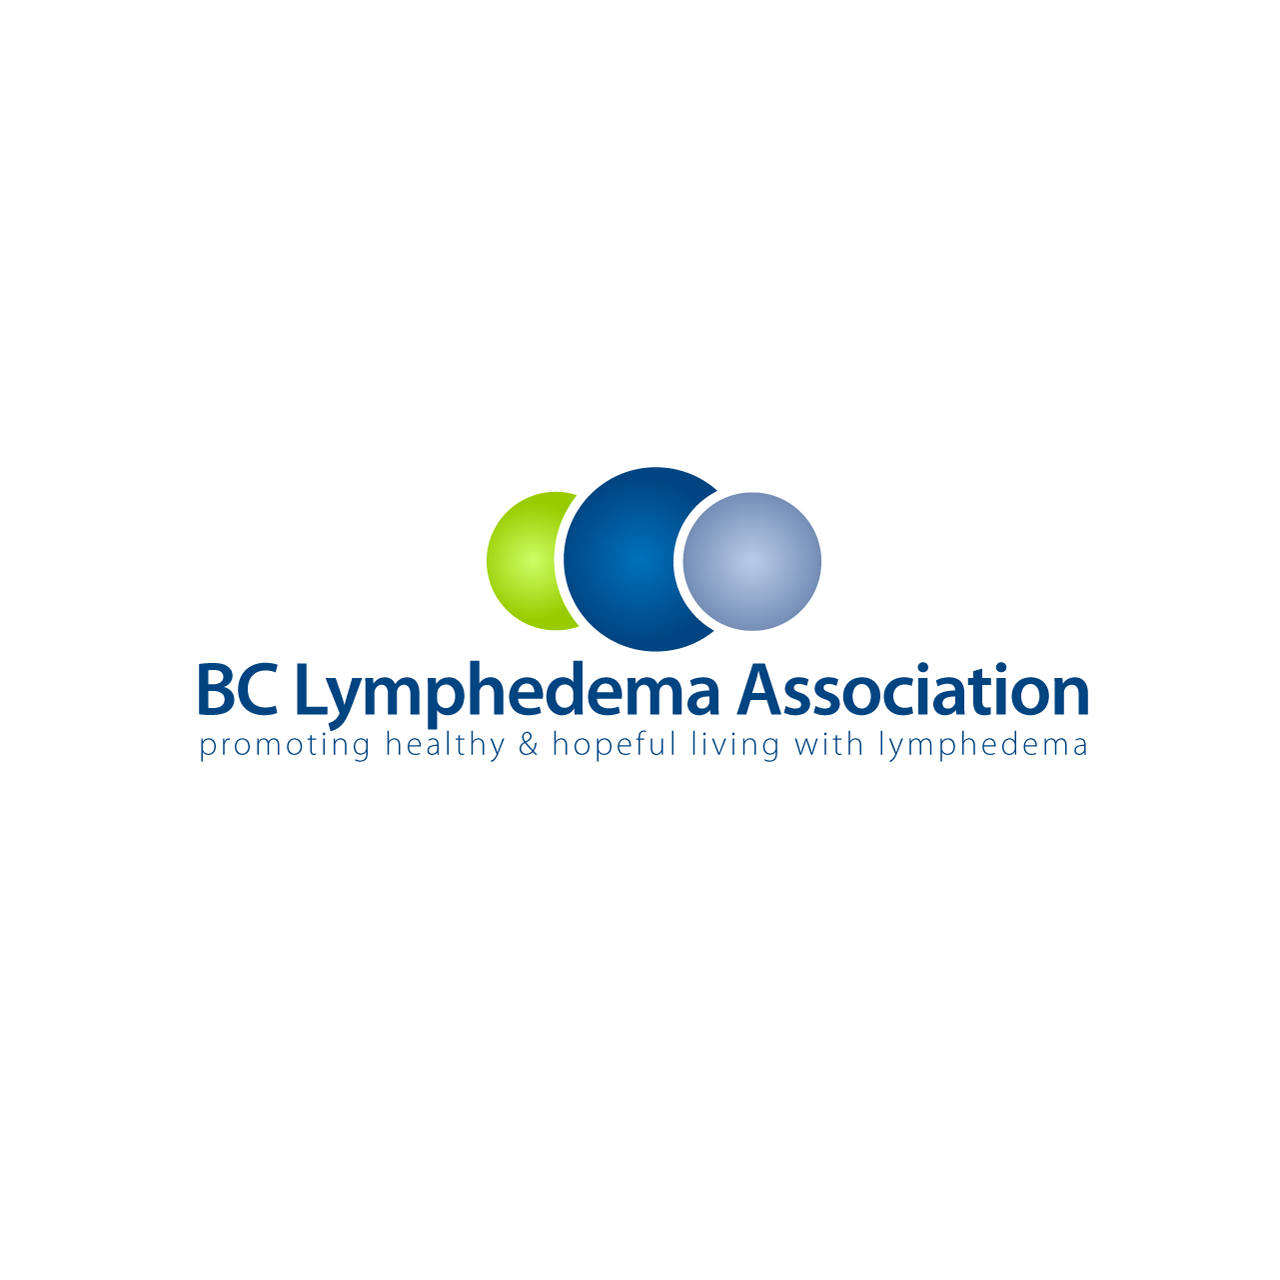 Logo Design by umxca - Entry No. 71 in the Logo Design Contest BC Lymphedema Association.